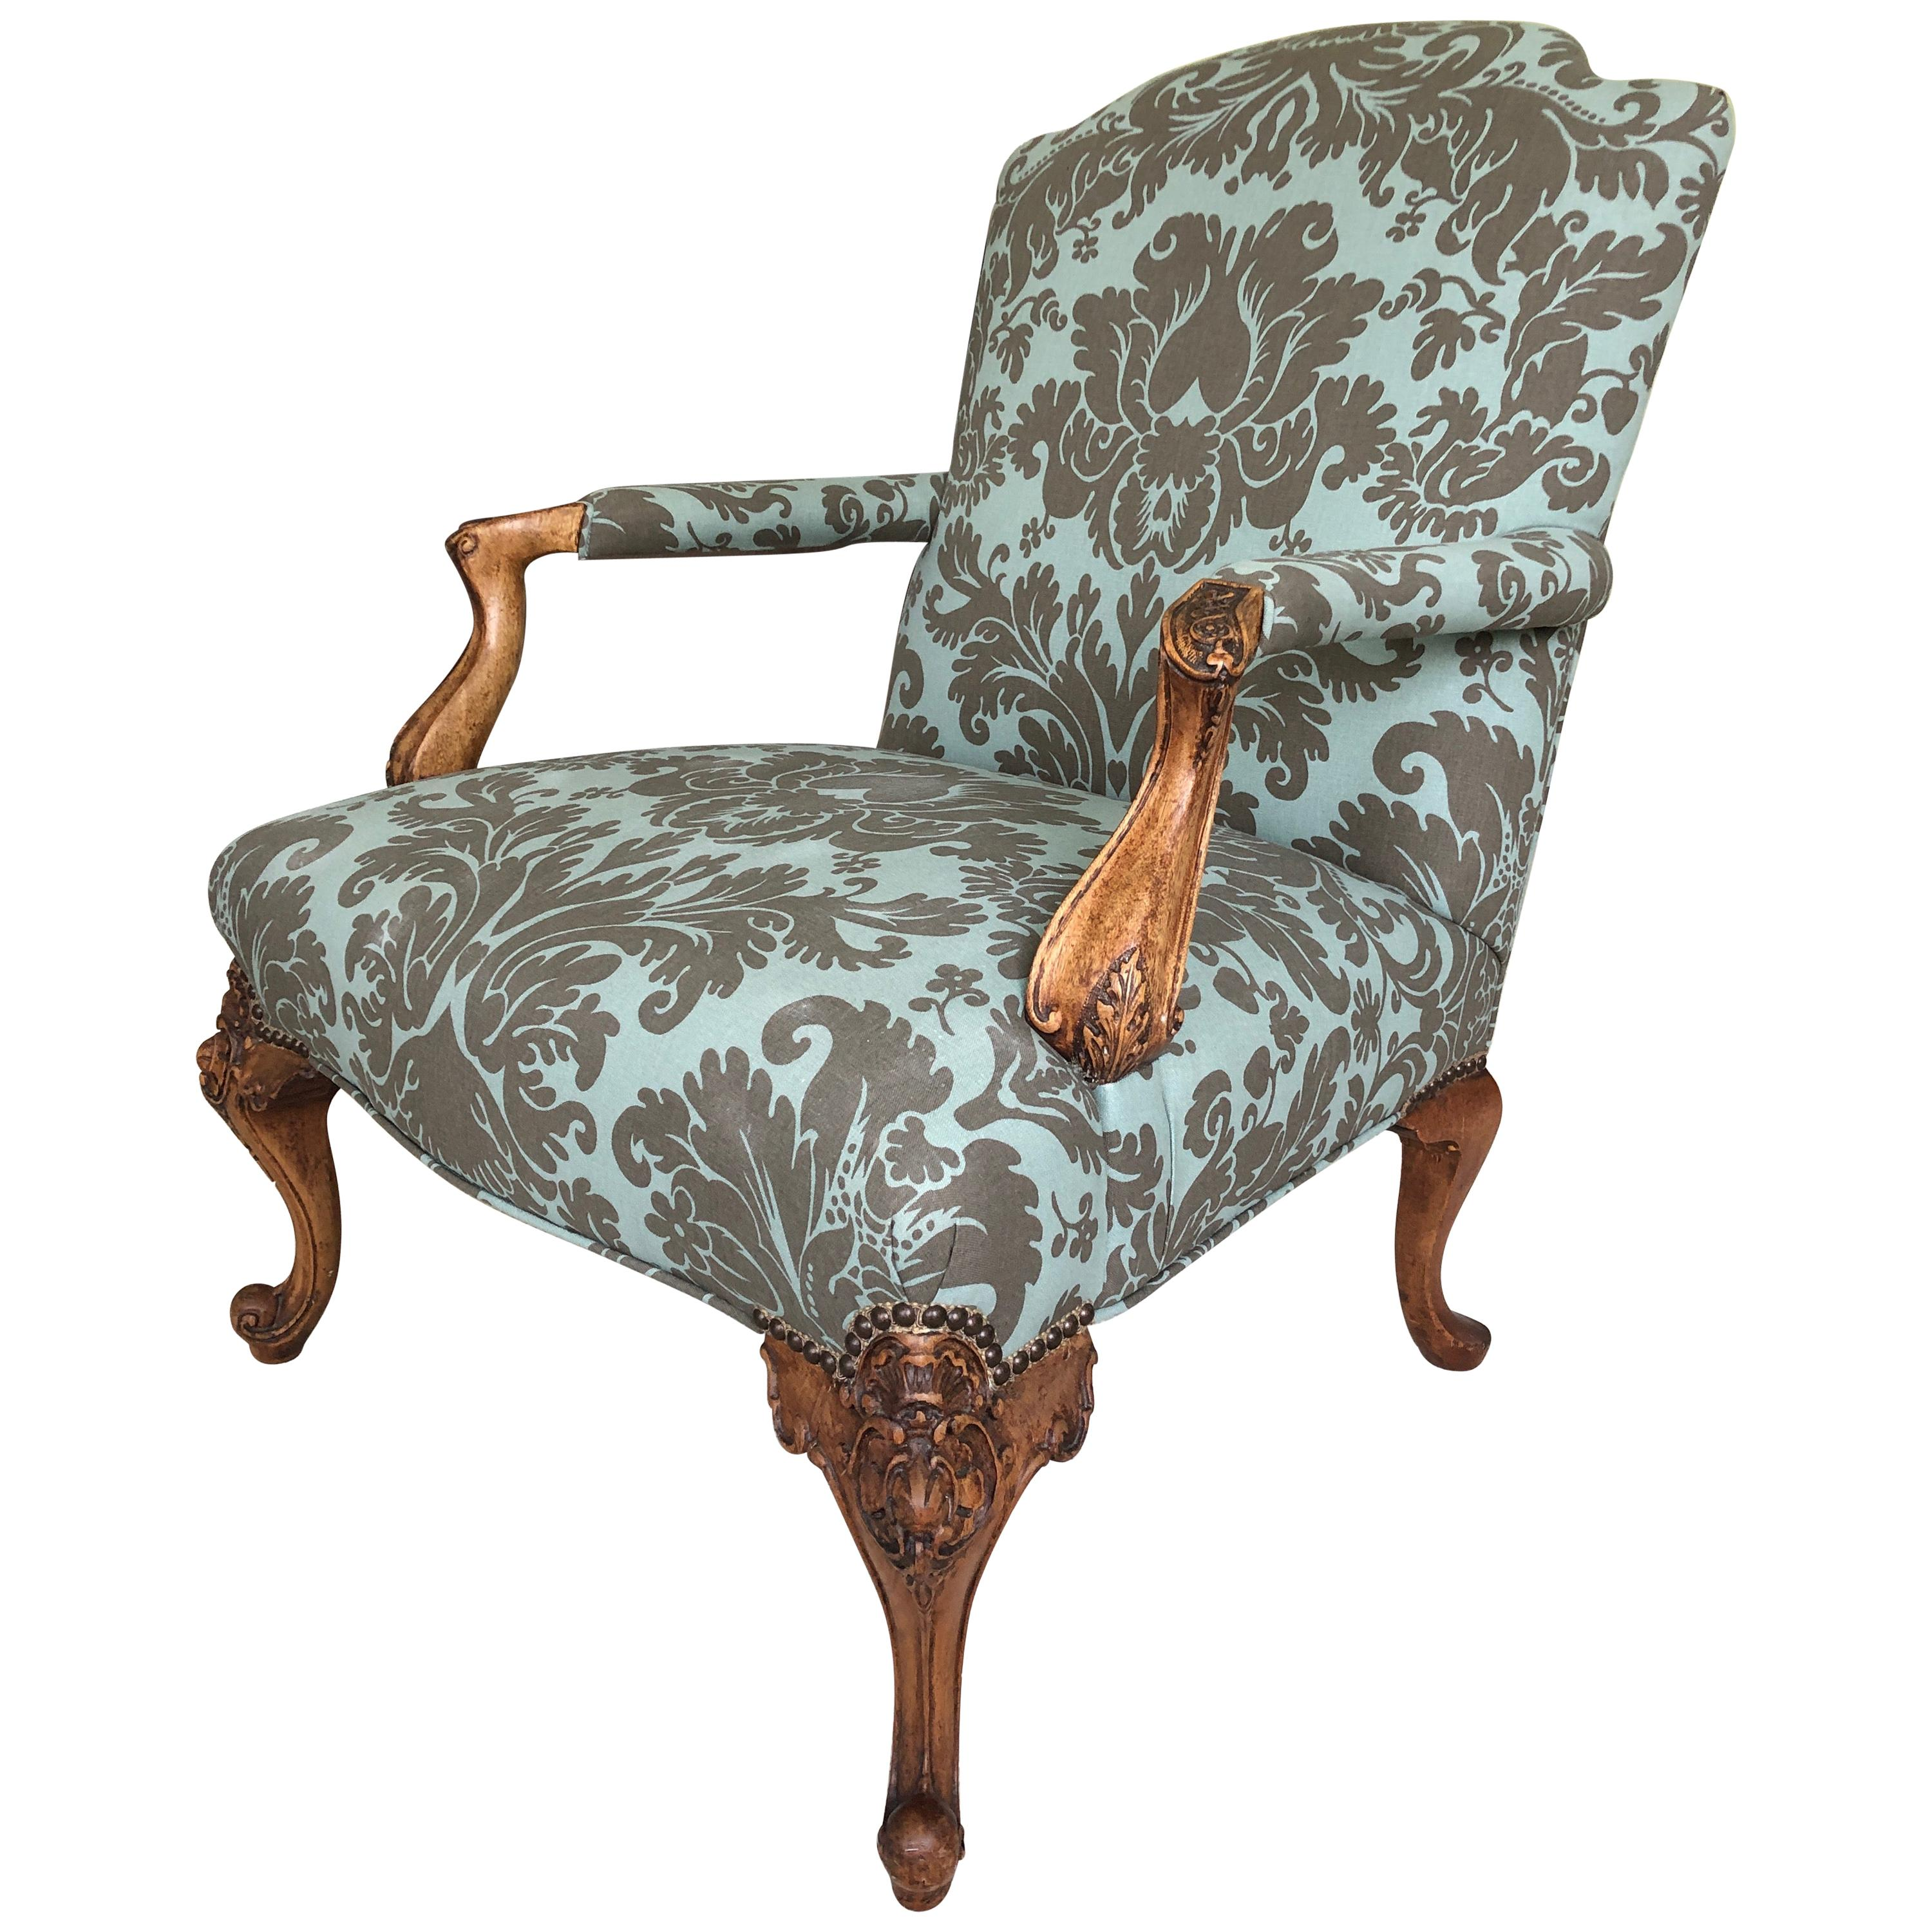 Antique and Vintage Armchairs - 18,675 For Sale at 1stdibs